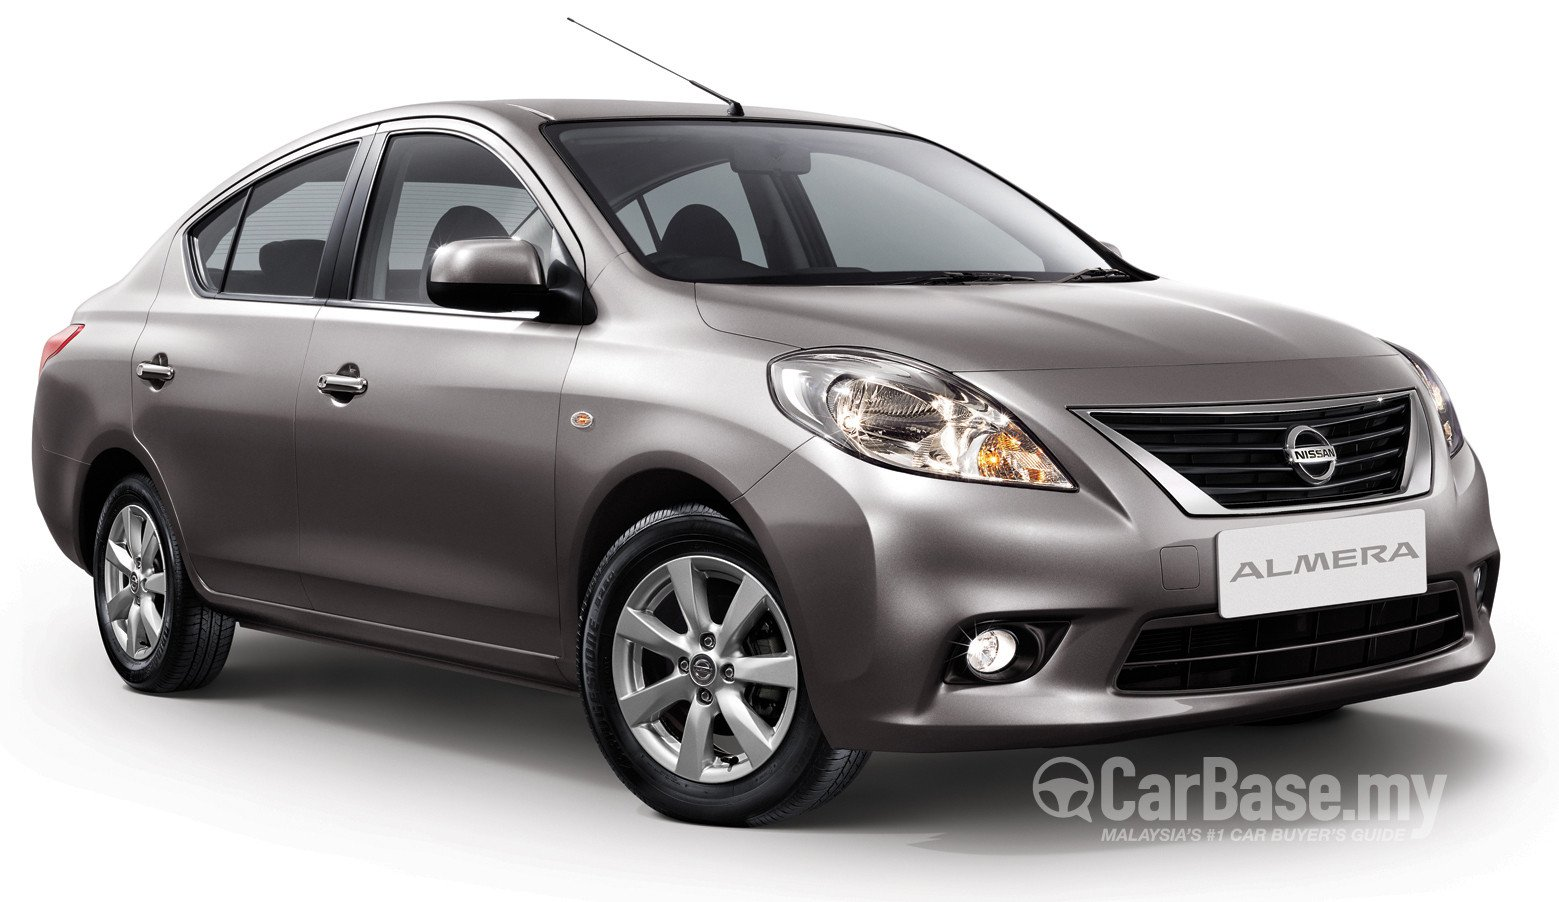 2012 nissan almera n17 st review